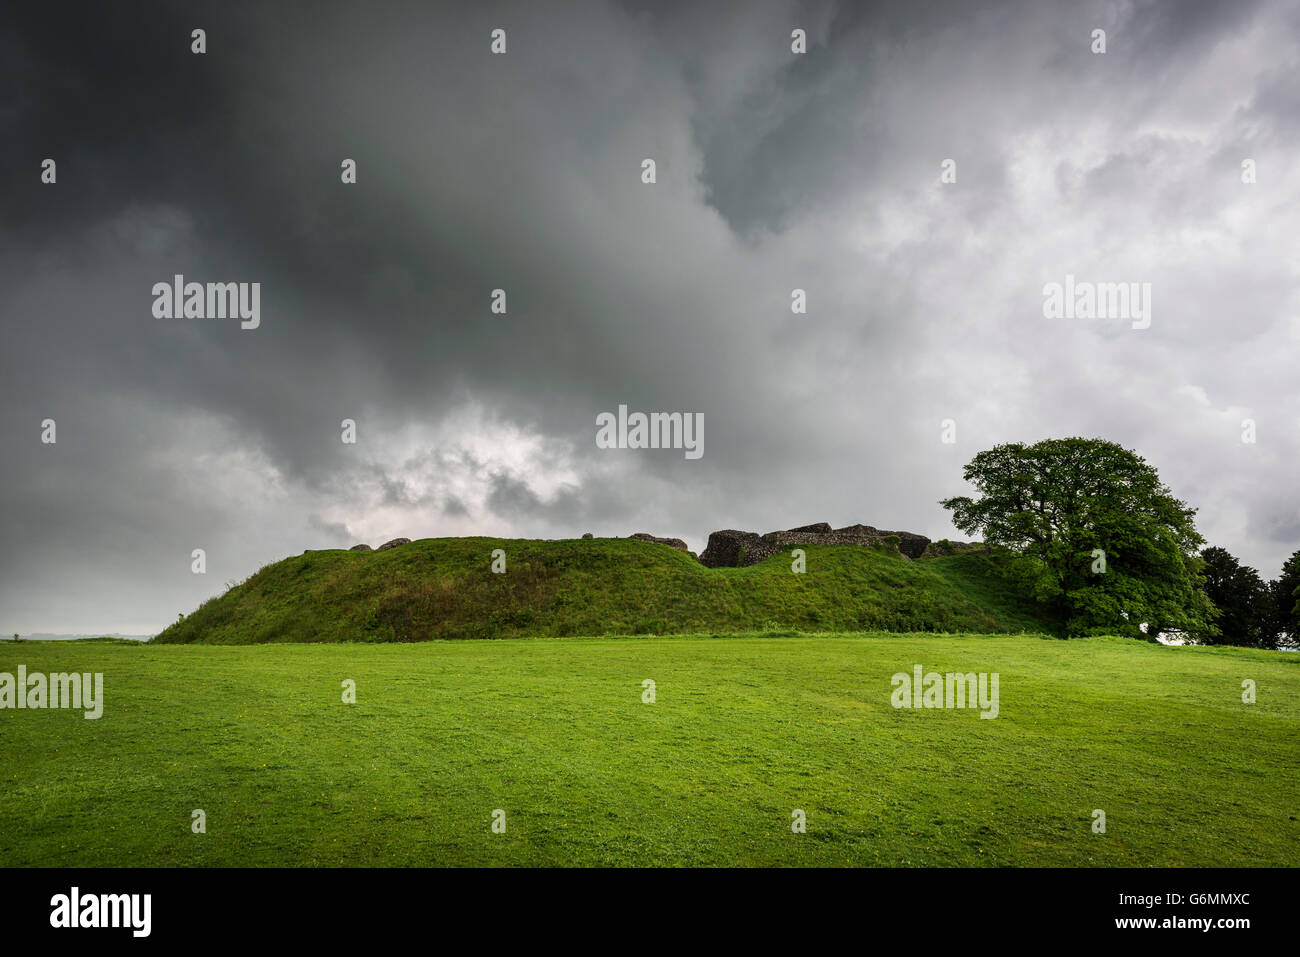 The ruins of the Norman Castle at the centre of Old Sarum Iron Age hill fort near Salisbury, Wiltshire, UK Stock Photo